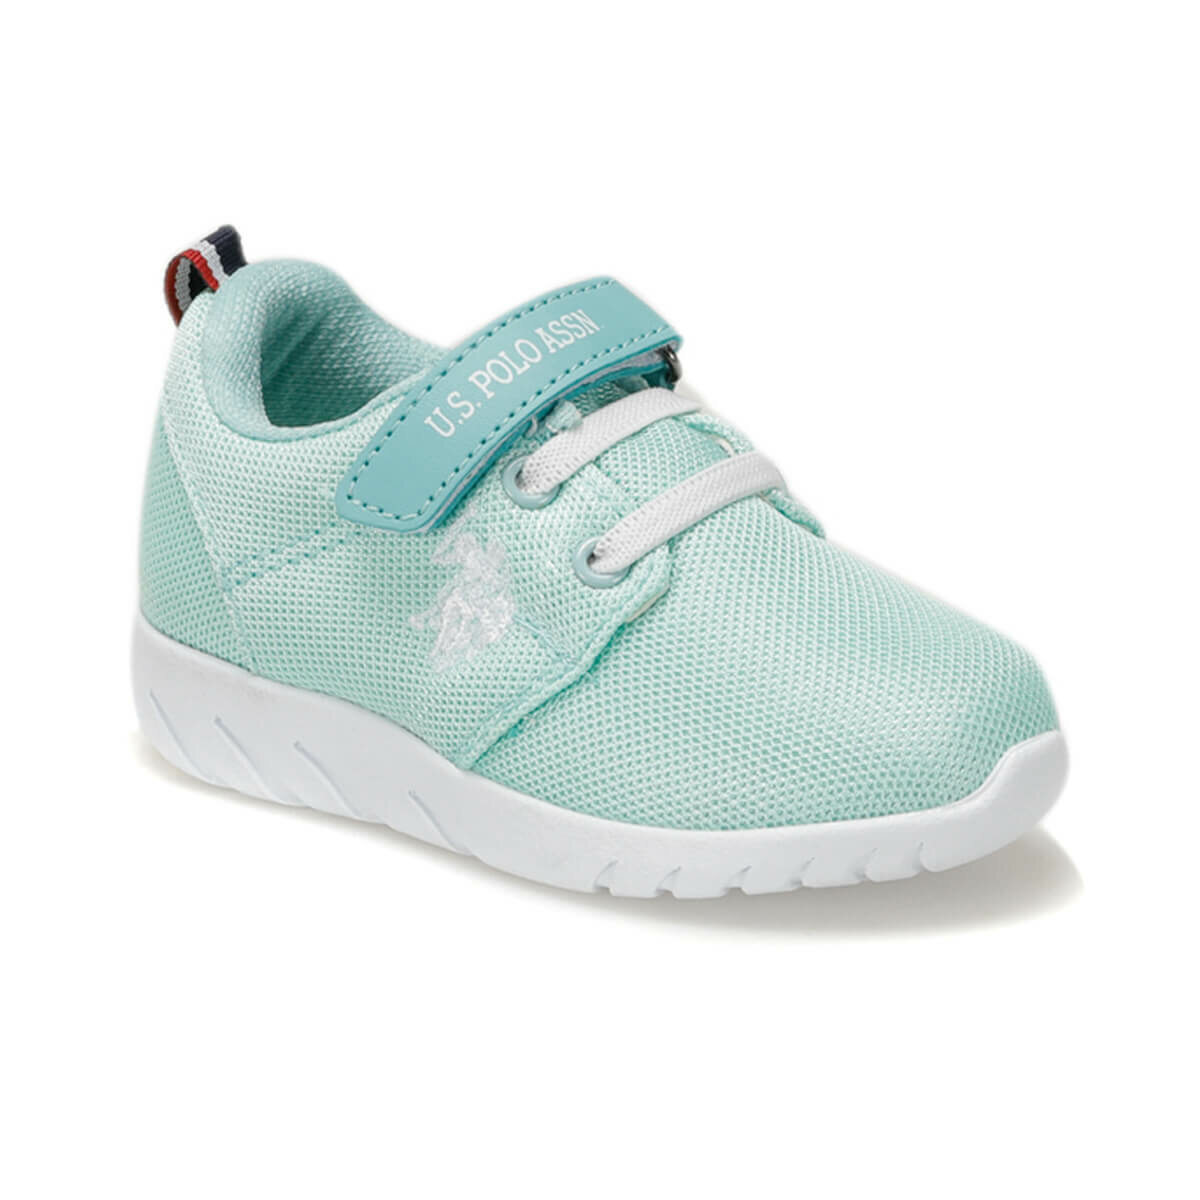 FLO HONEY Mint Unisex Children Sneaker Shoes U.S. POLO ASSN.